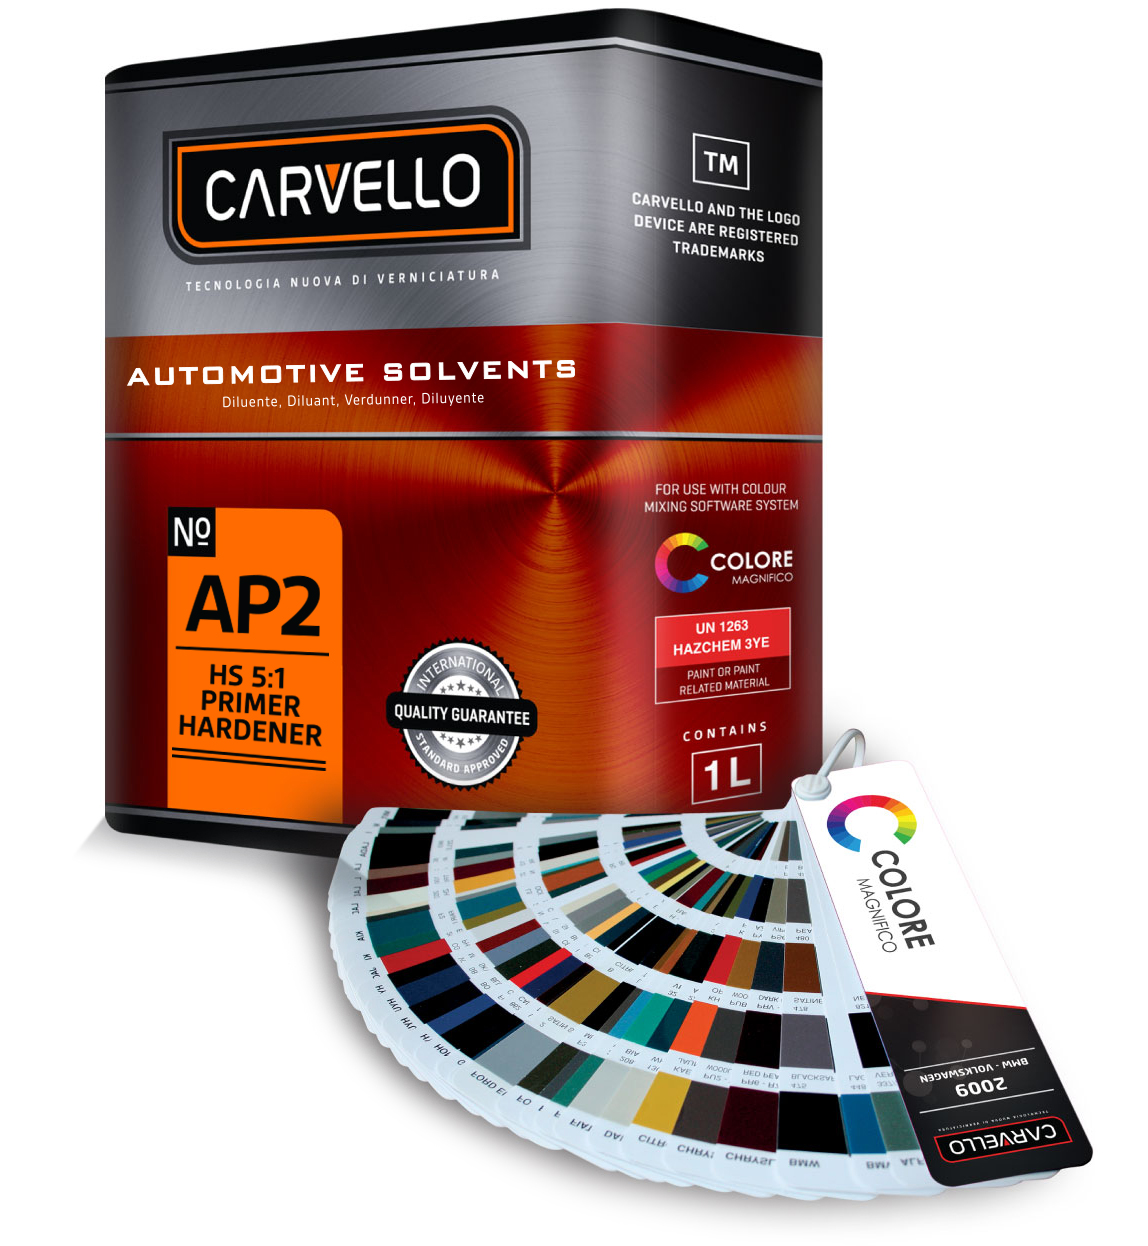 Carvello Paint Tin - Packaging design by Tozer